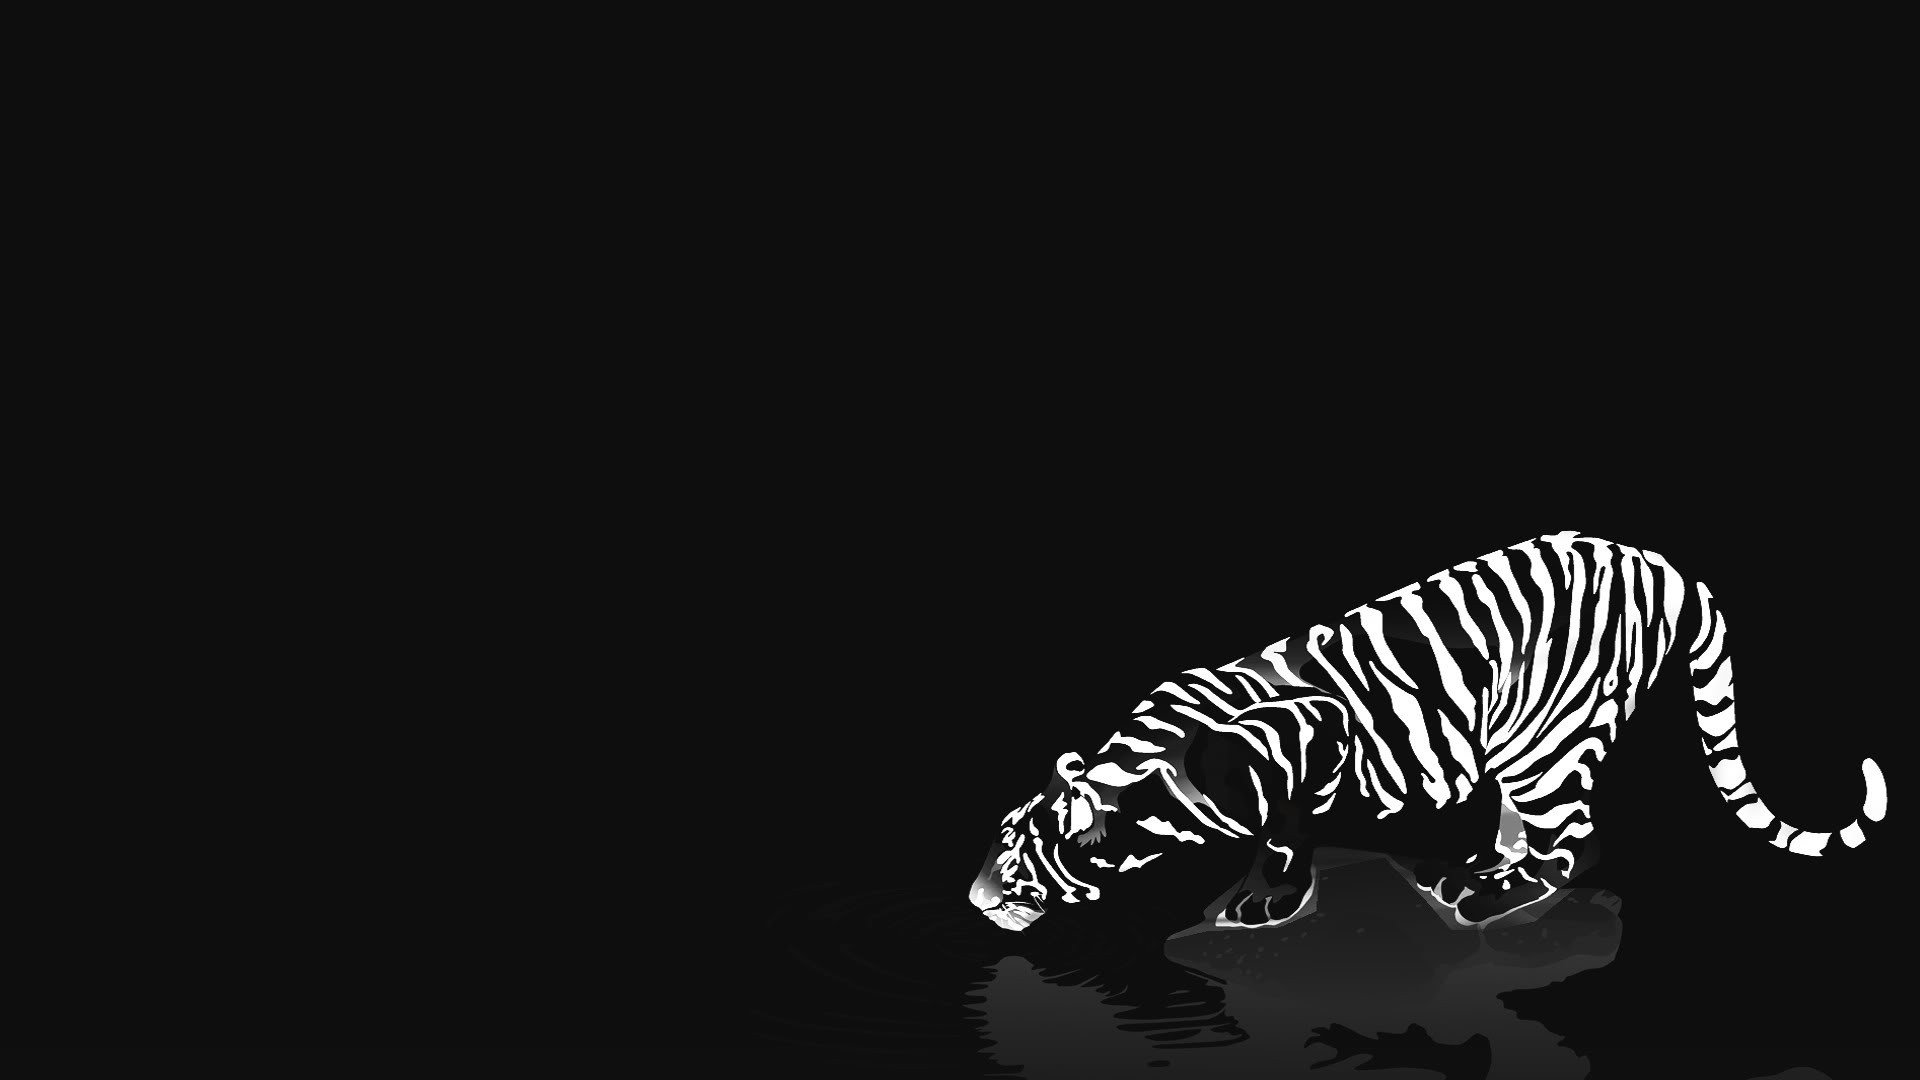 Black and White leopard